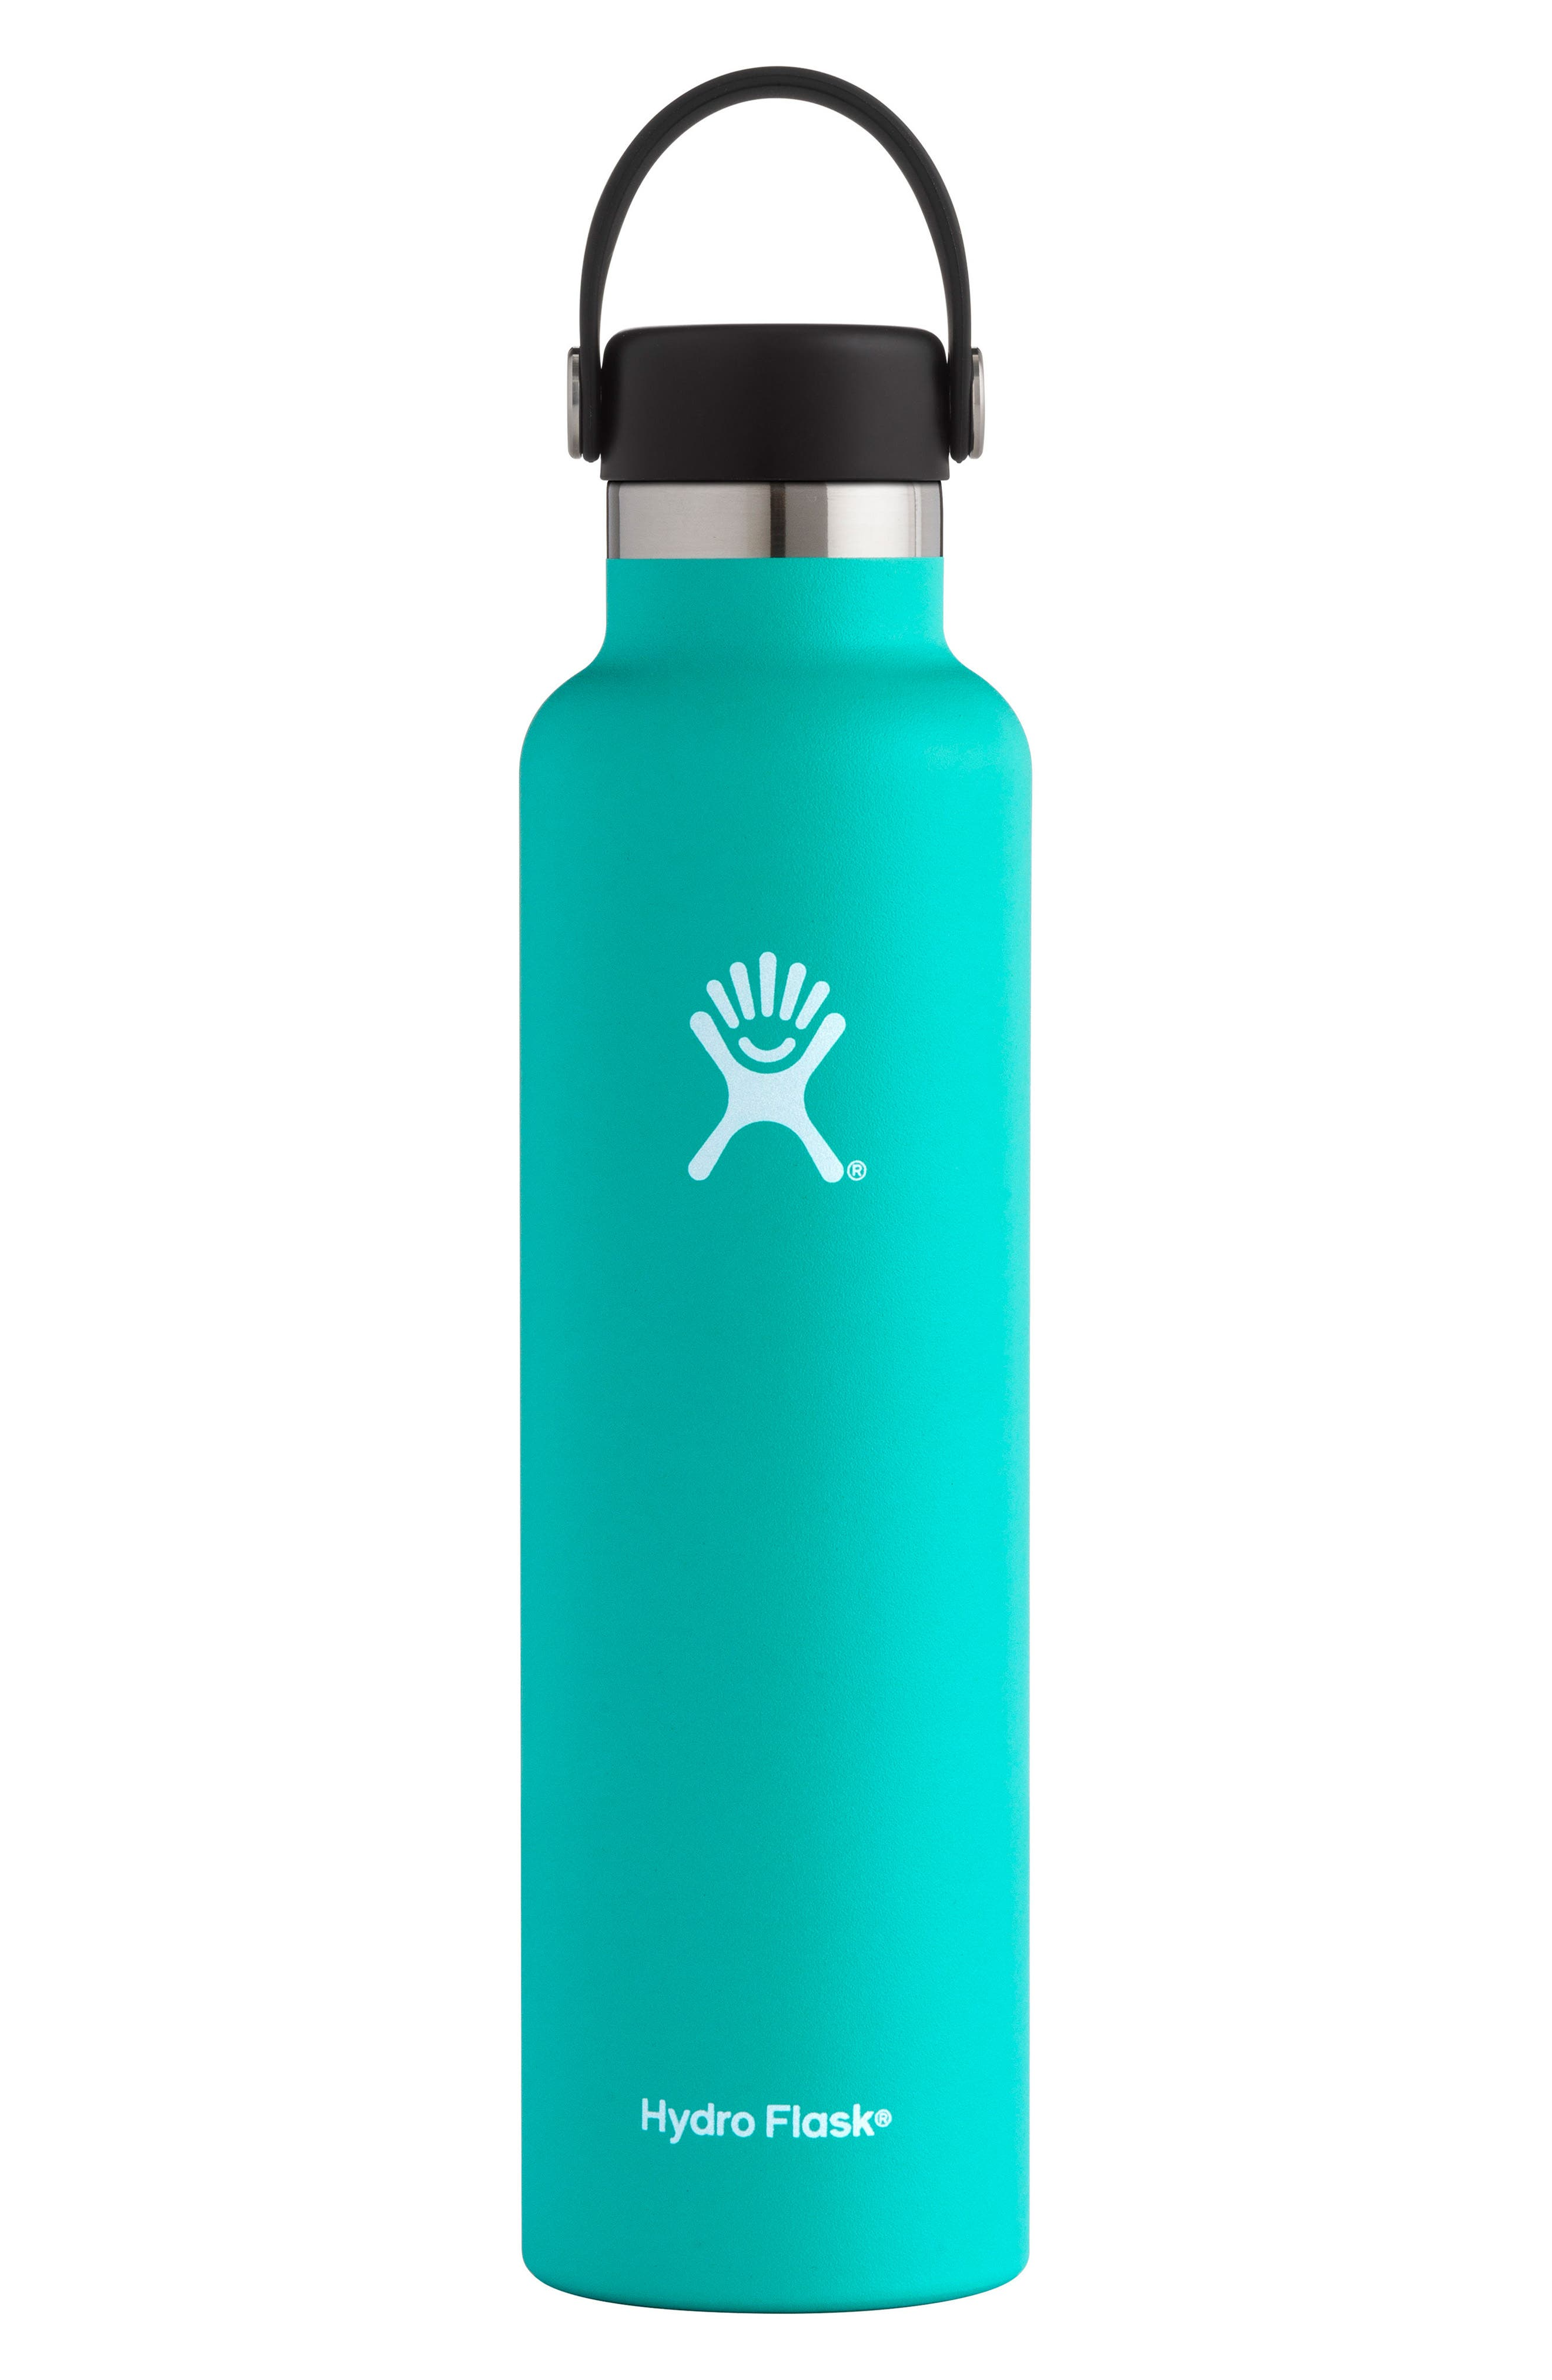 hydro flask 24ounce standard mouth bottle